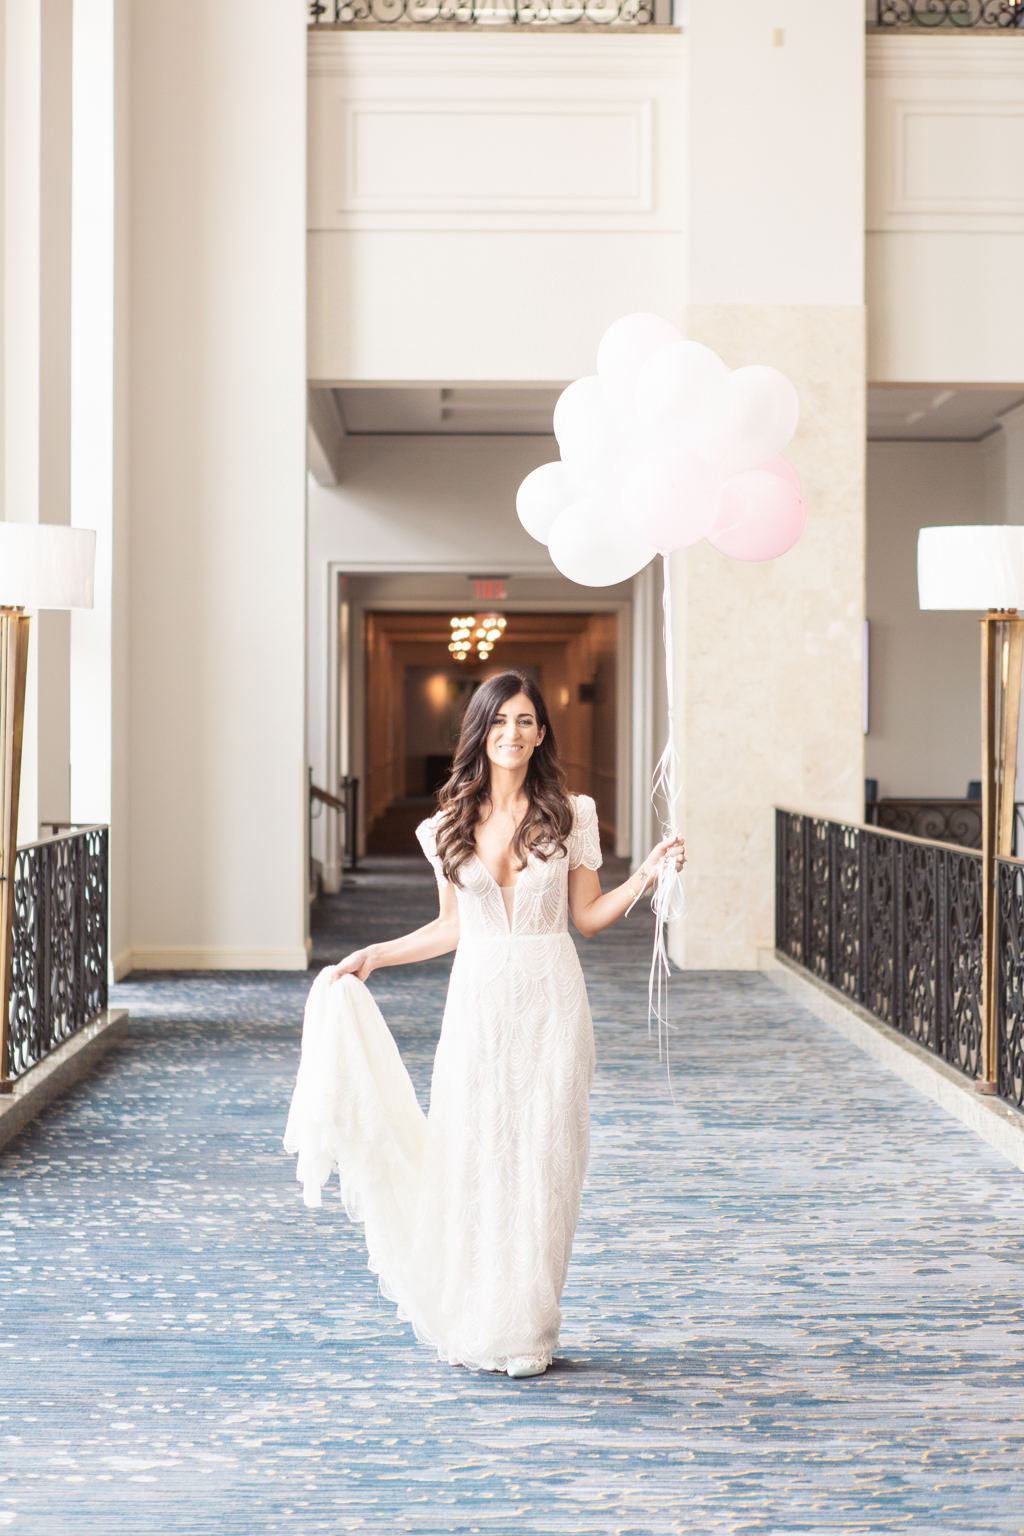 Classic Tampa Bride Wedding Beauty Portrait Holding Pink Balloons in Delicate Cap Sleeve V Neckline Wedding Dress   Wedding Hair and Makeup Femme Akoi